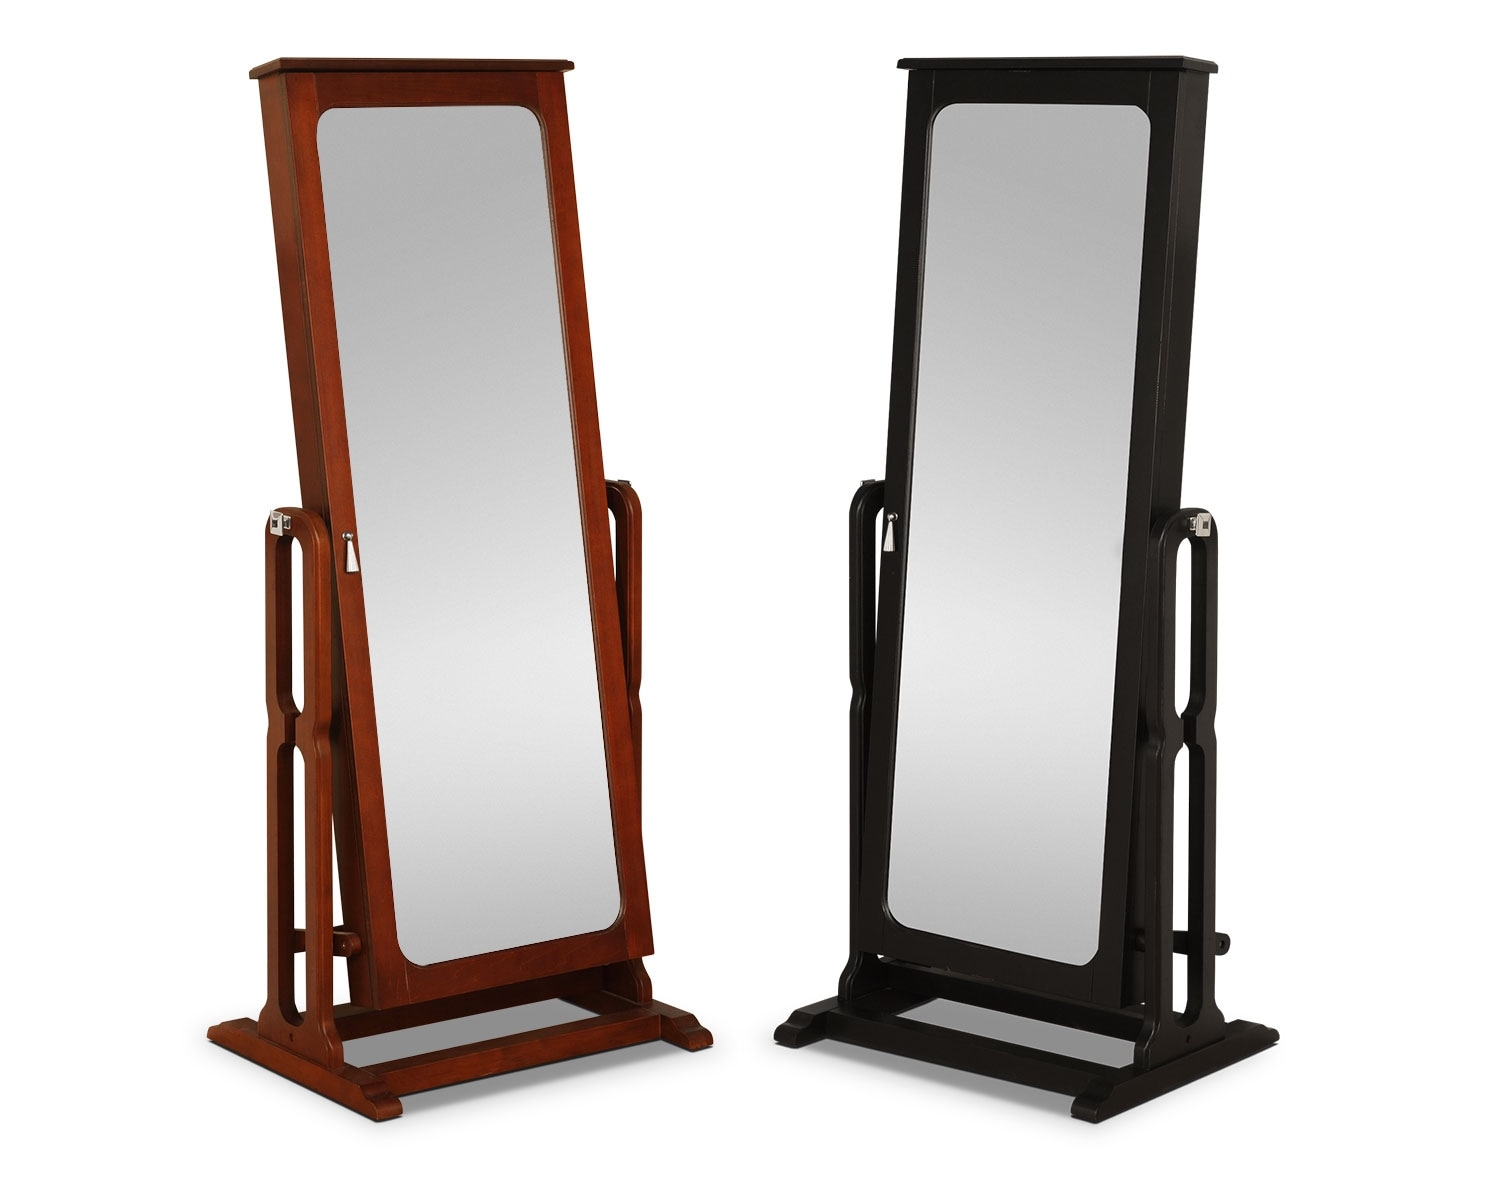 The Sadie Cheval Storage Mirror Collection